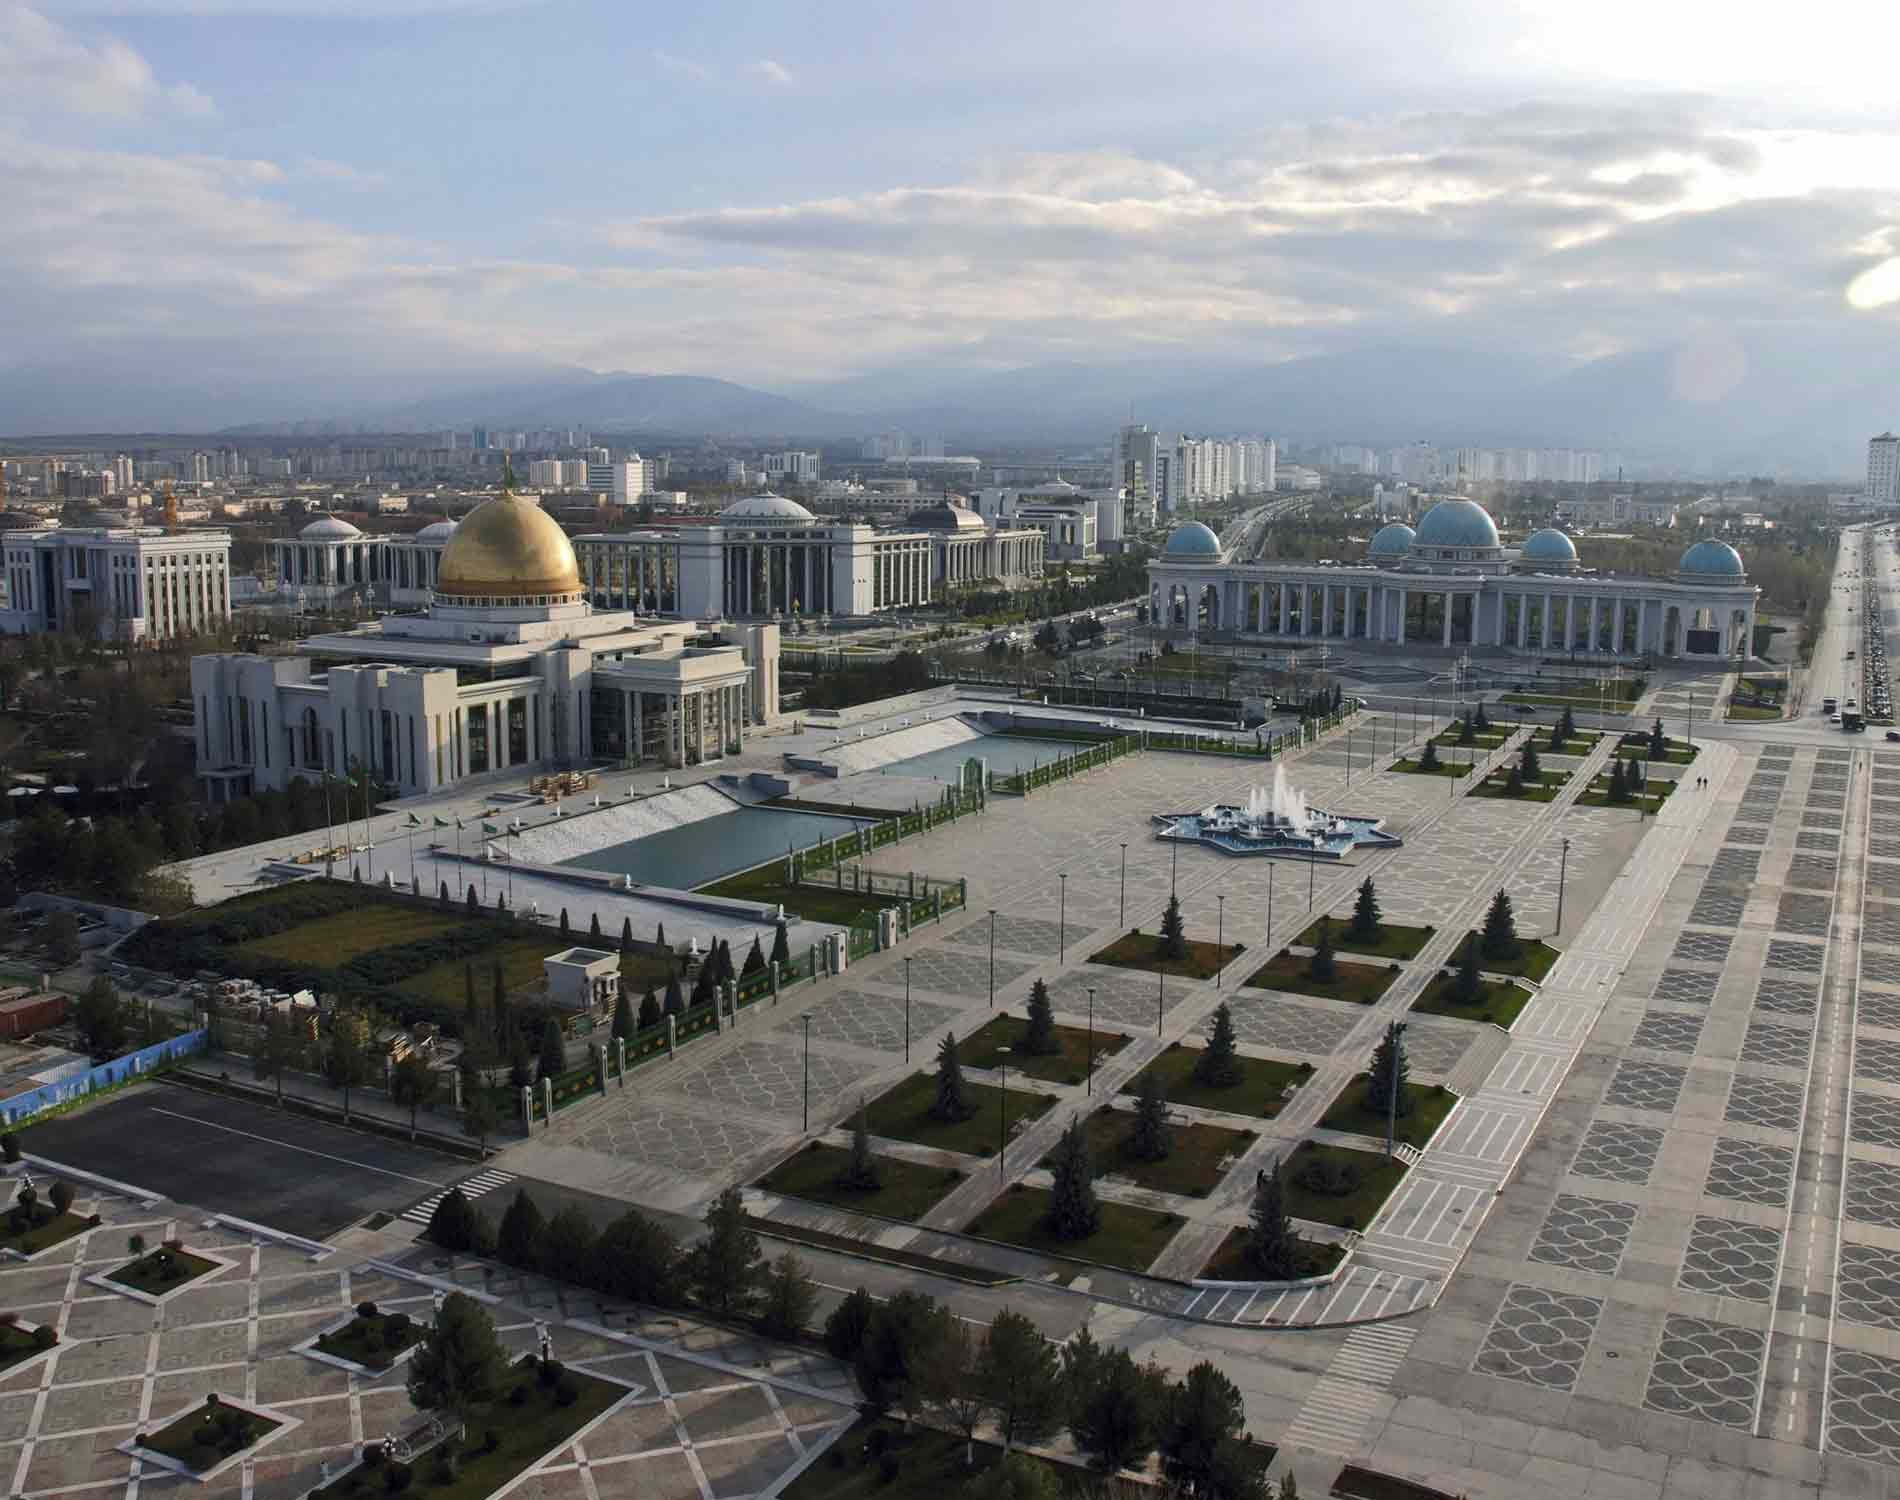 /-/media/images/website/background-images/offices/ashgabat/ashgabat_web.jpg